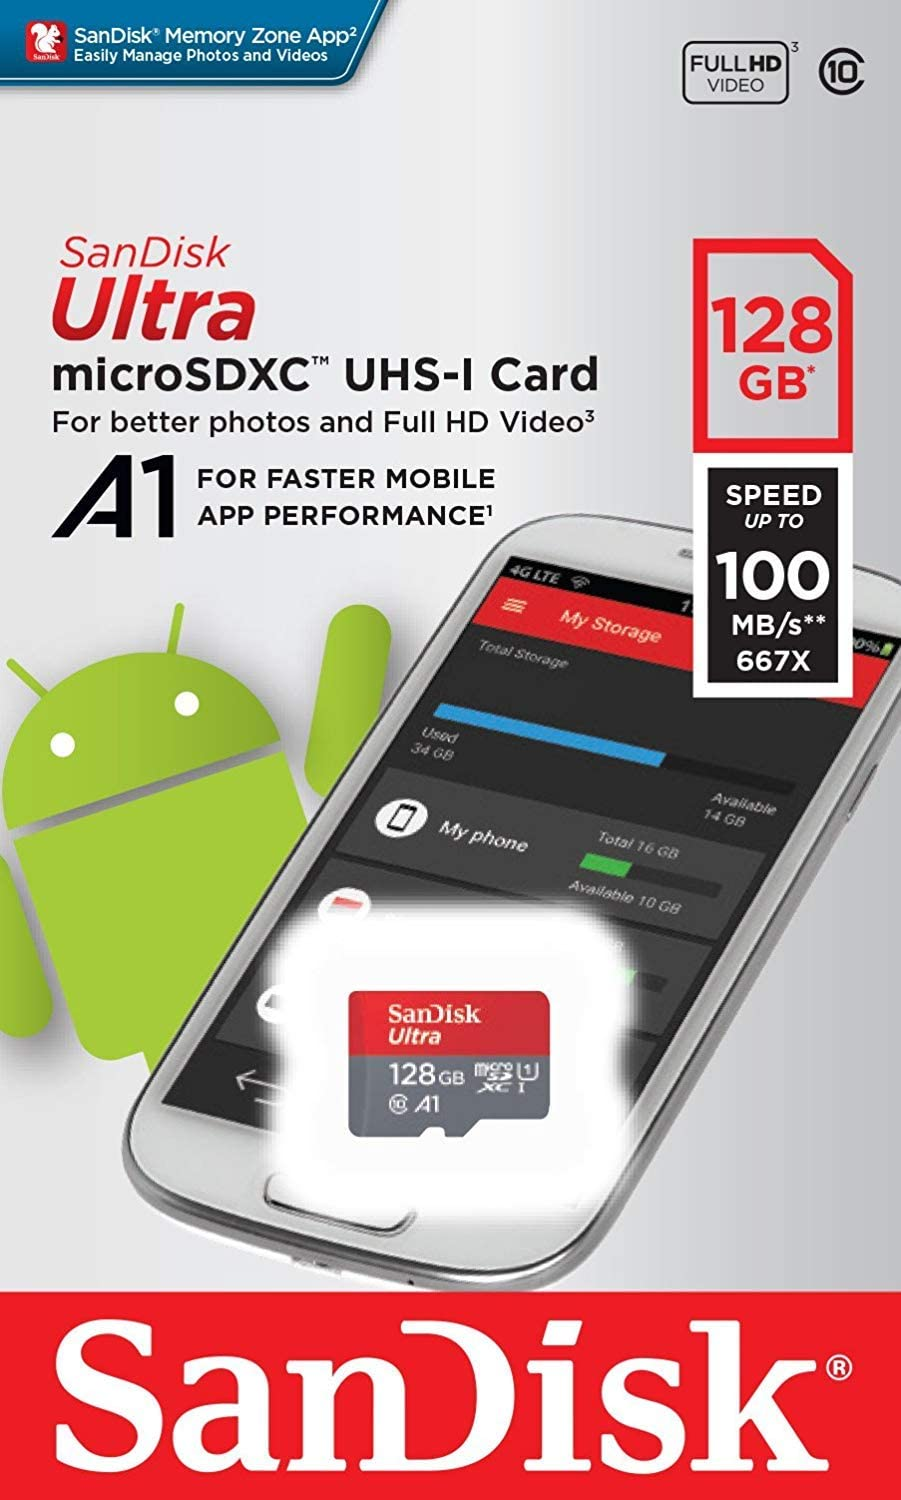 100MBs A1 U1 C10 Works with SanDisk SanDisk Ultra 128GB MicroSDXC Verified for Honor 6 Plus by SanFlash